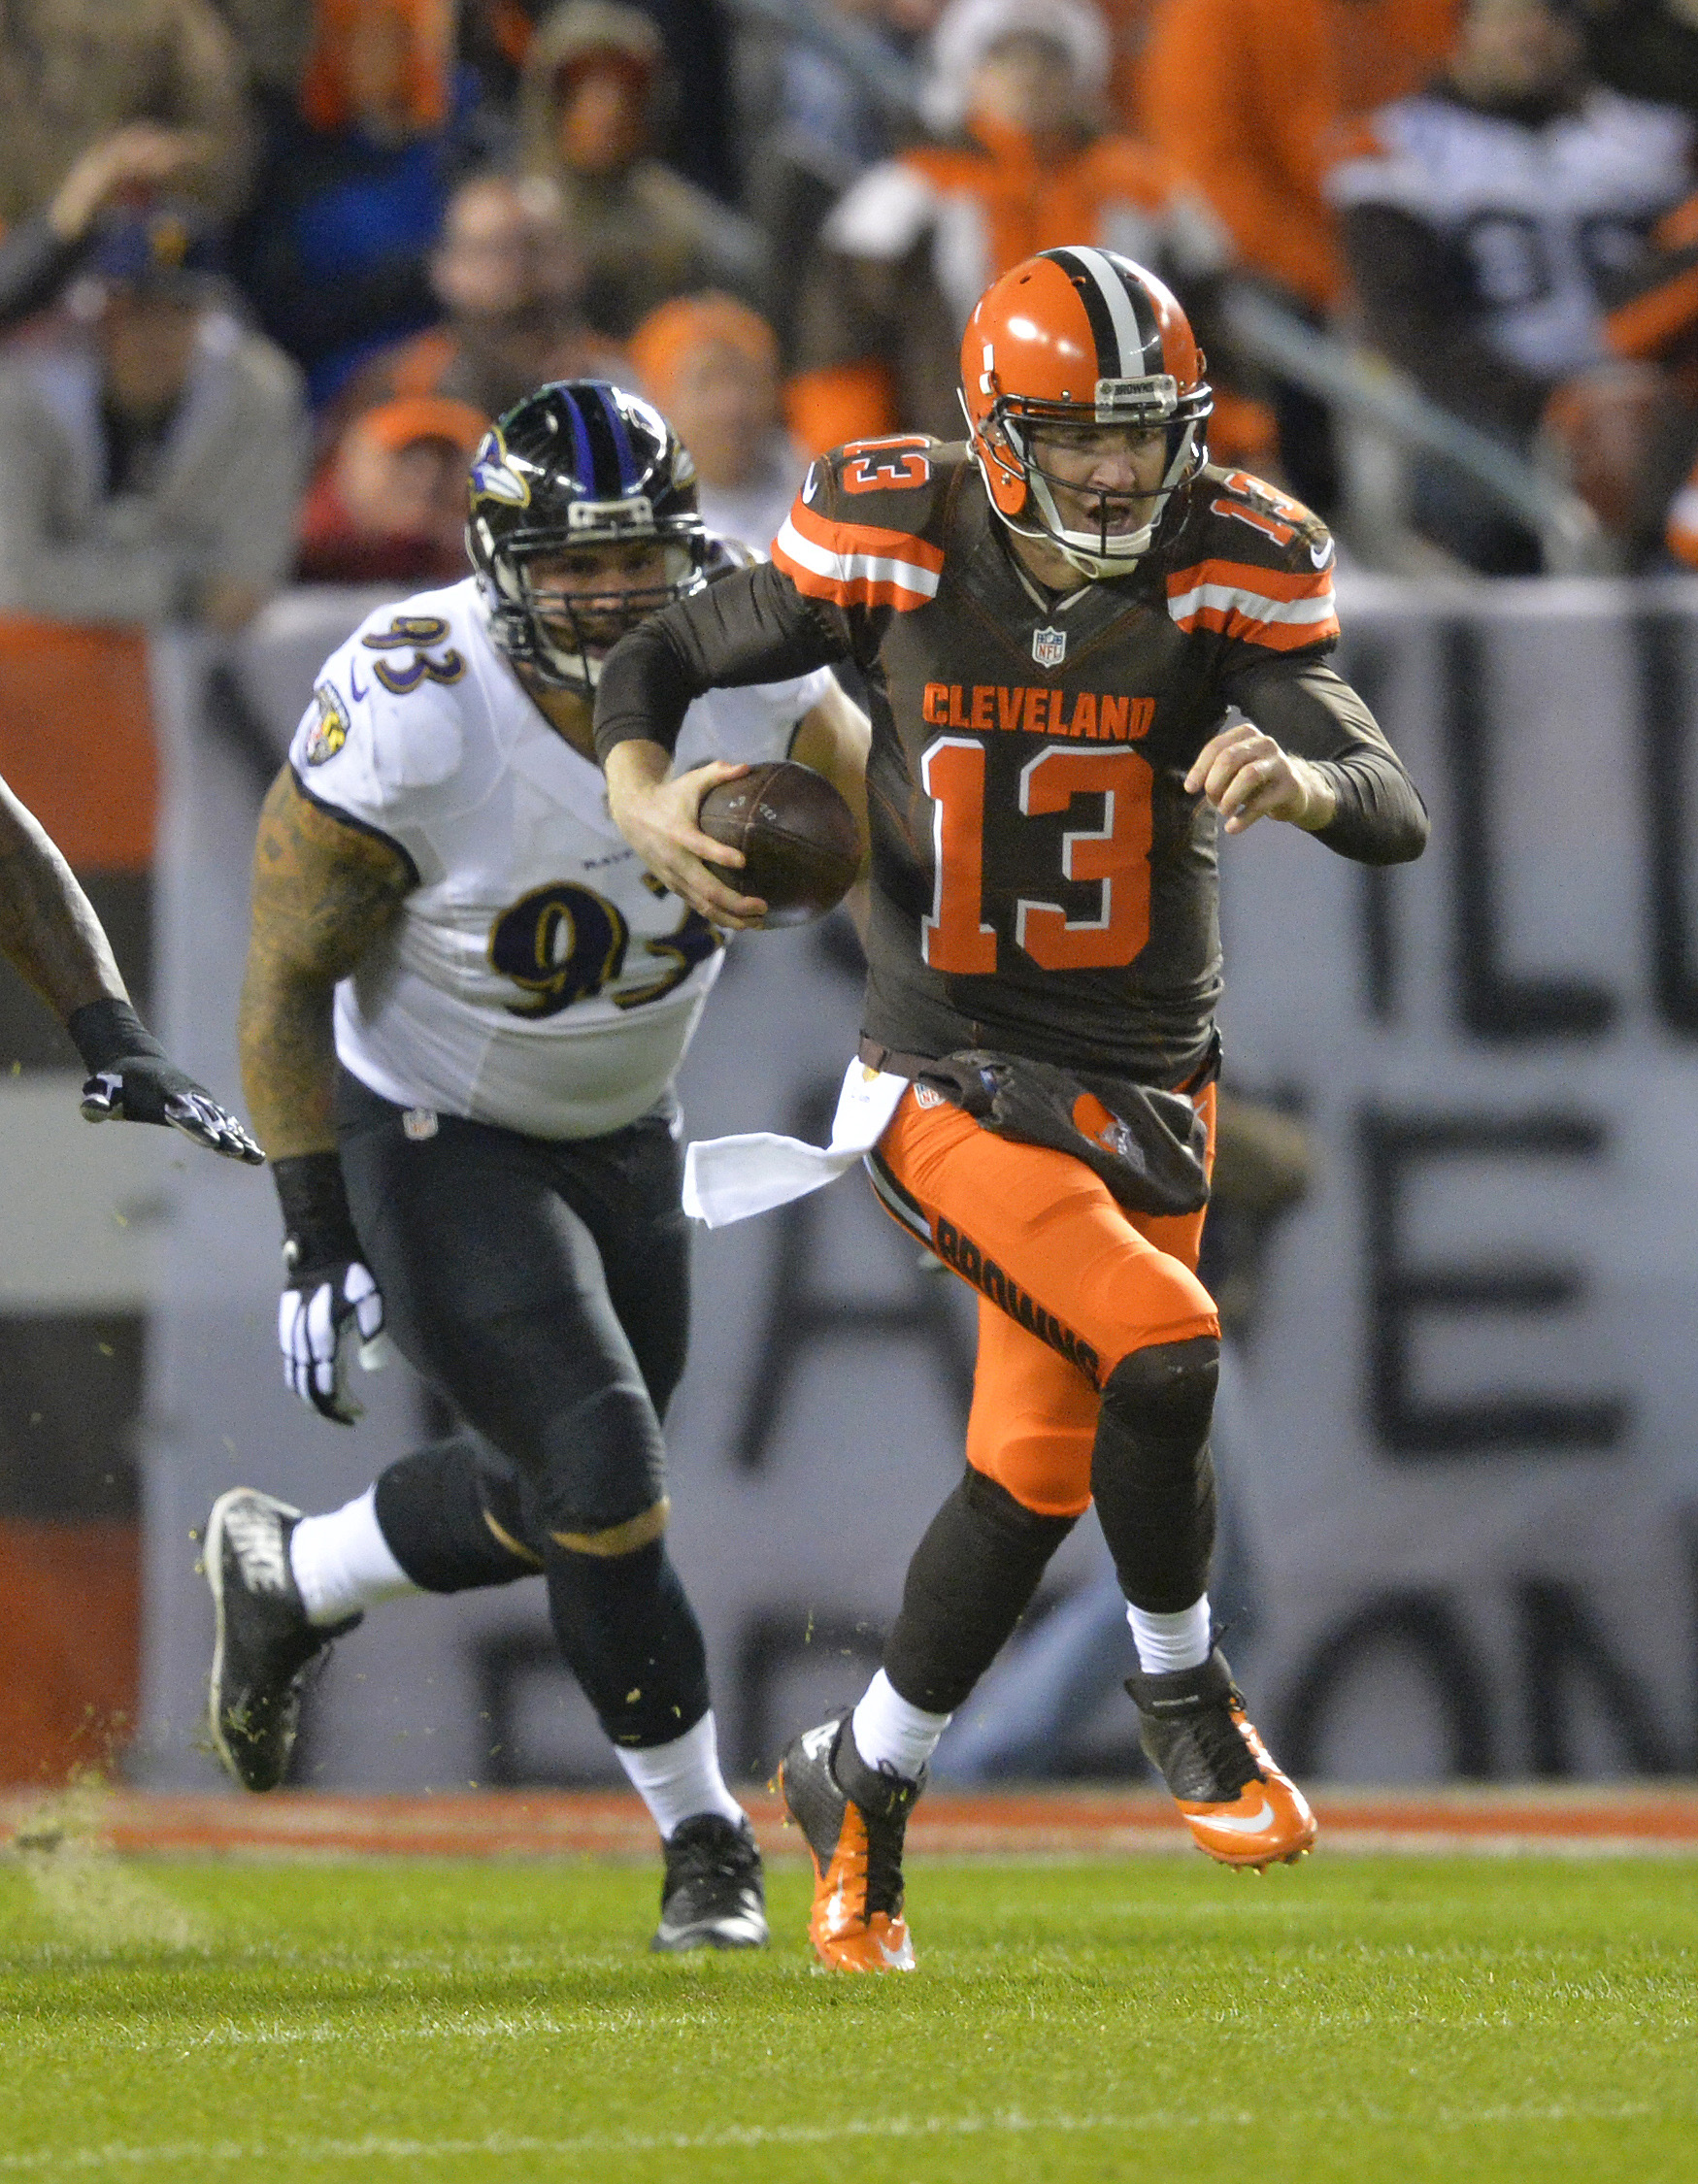 Cleveland Browns quarterback Josh McCown (13) outruns Baltimore Ravens defensive end Lawrence Guy (93) in the first half of an NFL football game, Monday, Nov. 30, 2015, in Cleveland. (AP Photo/David Richard)